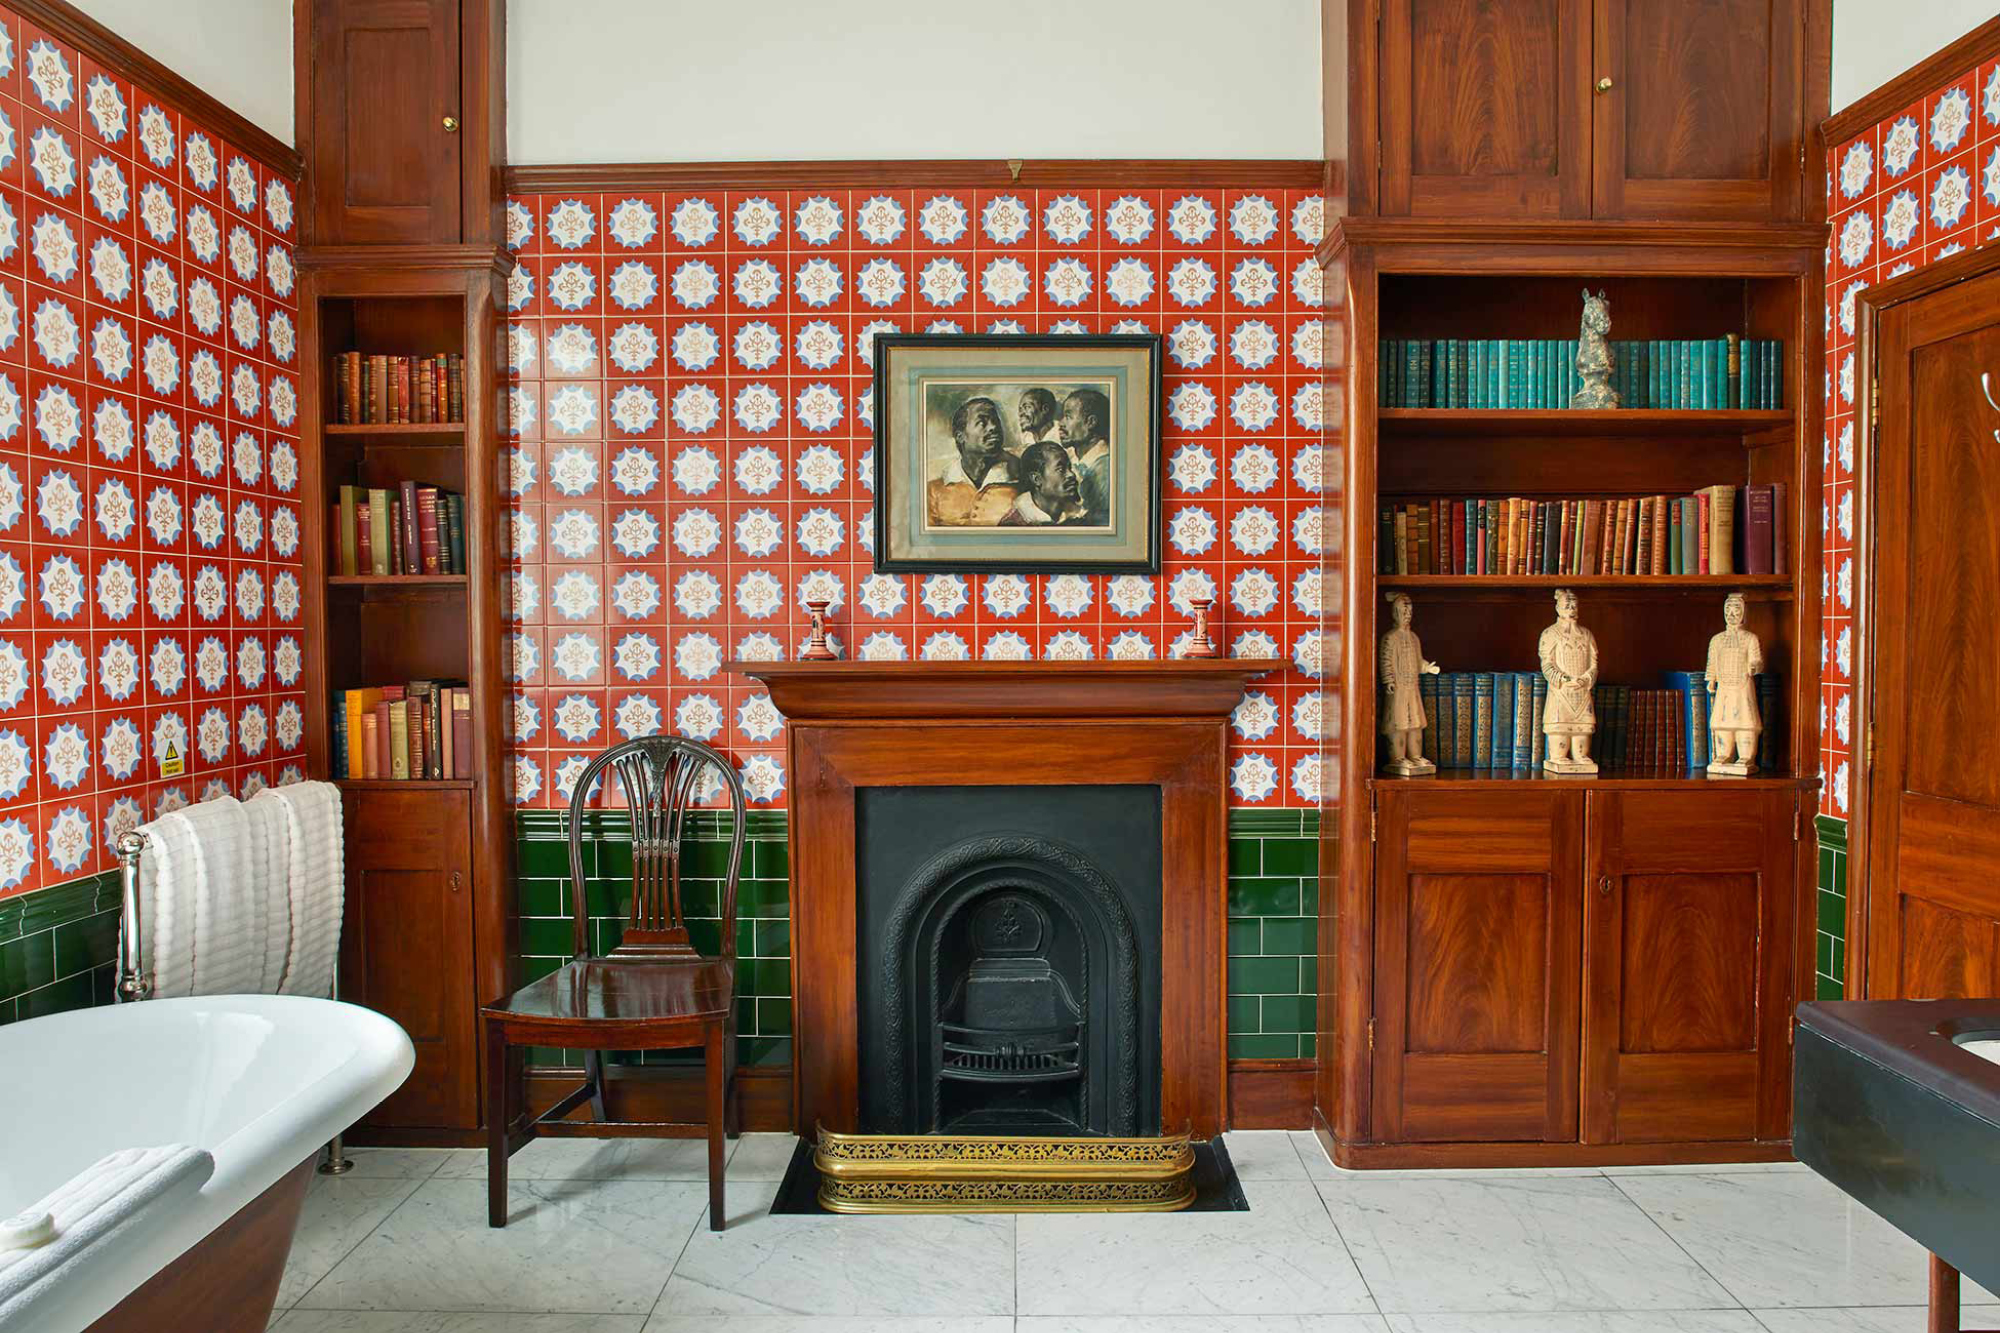 Home House is full of delightfully eccentric interiors